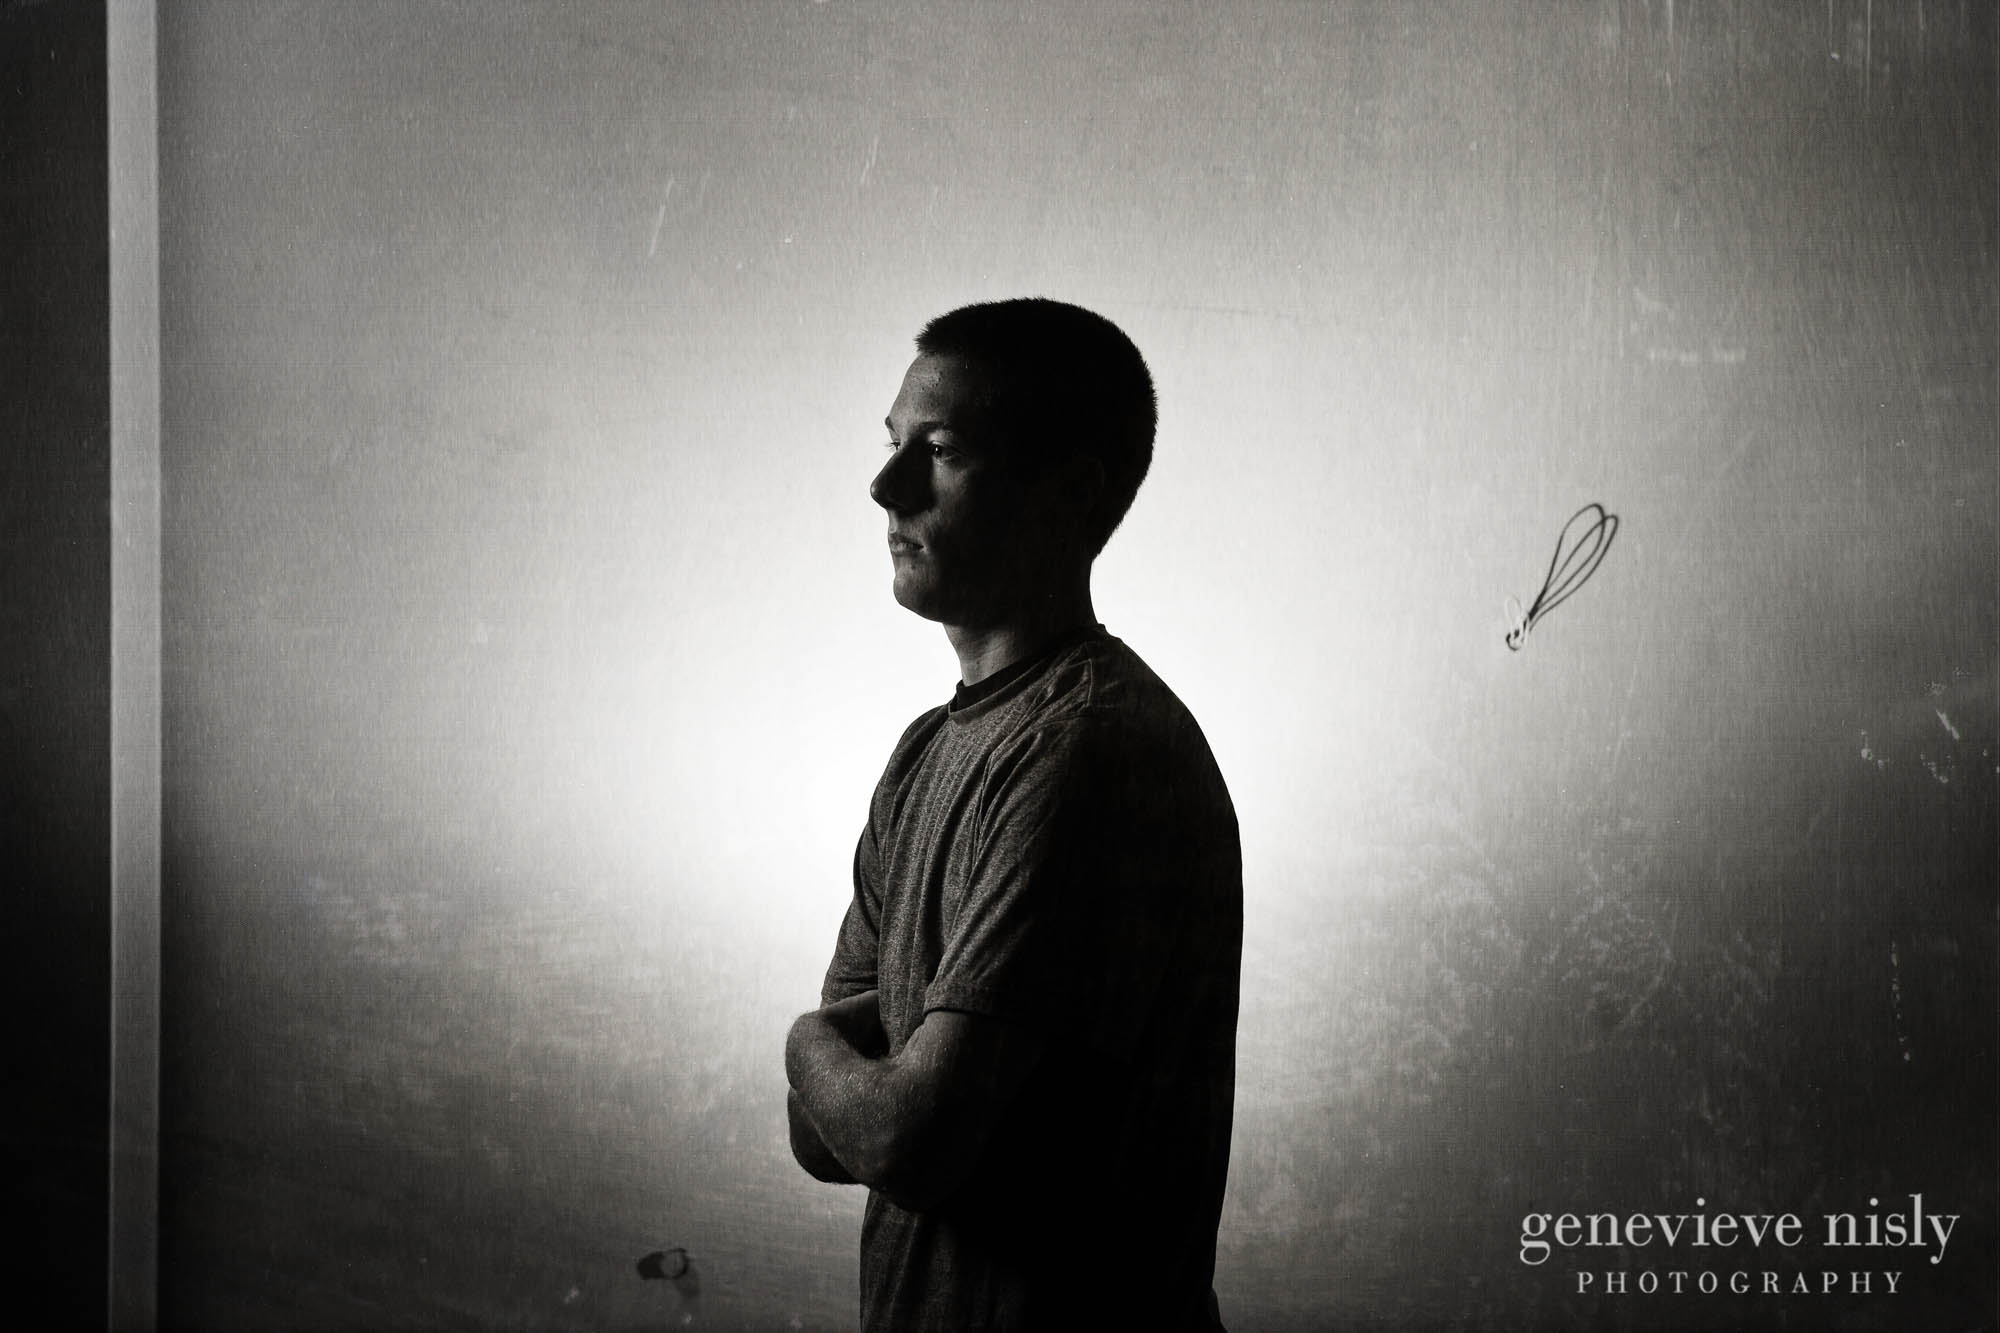 Copyright Genevieve Nisly Photography, Portraits